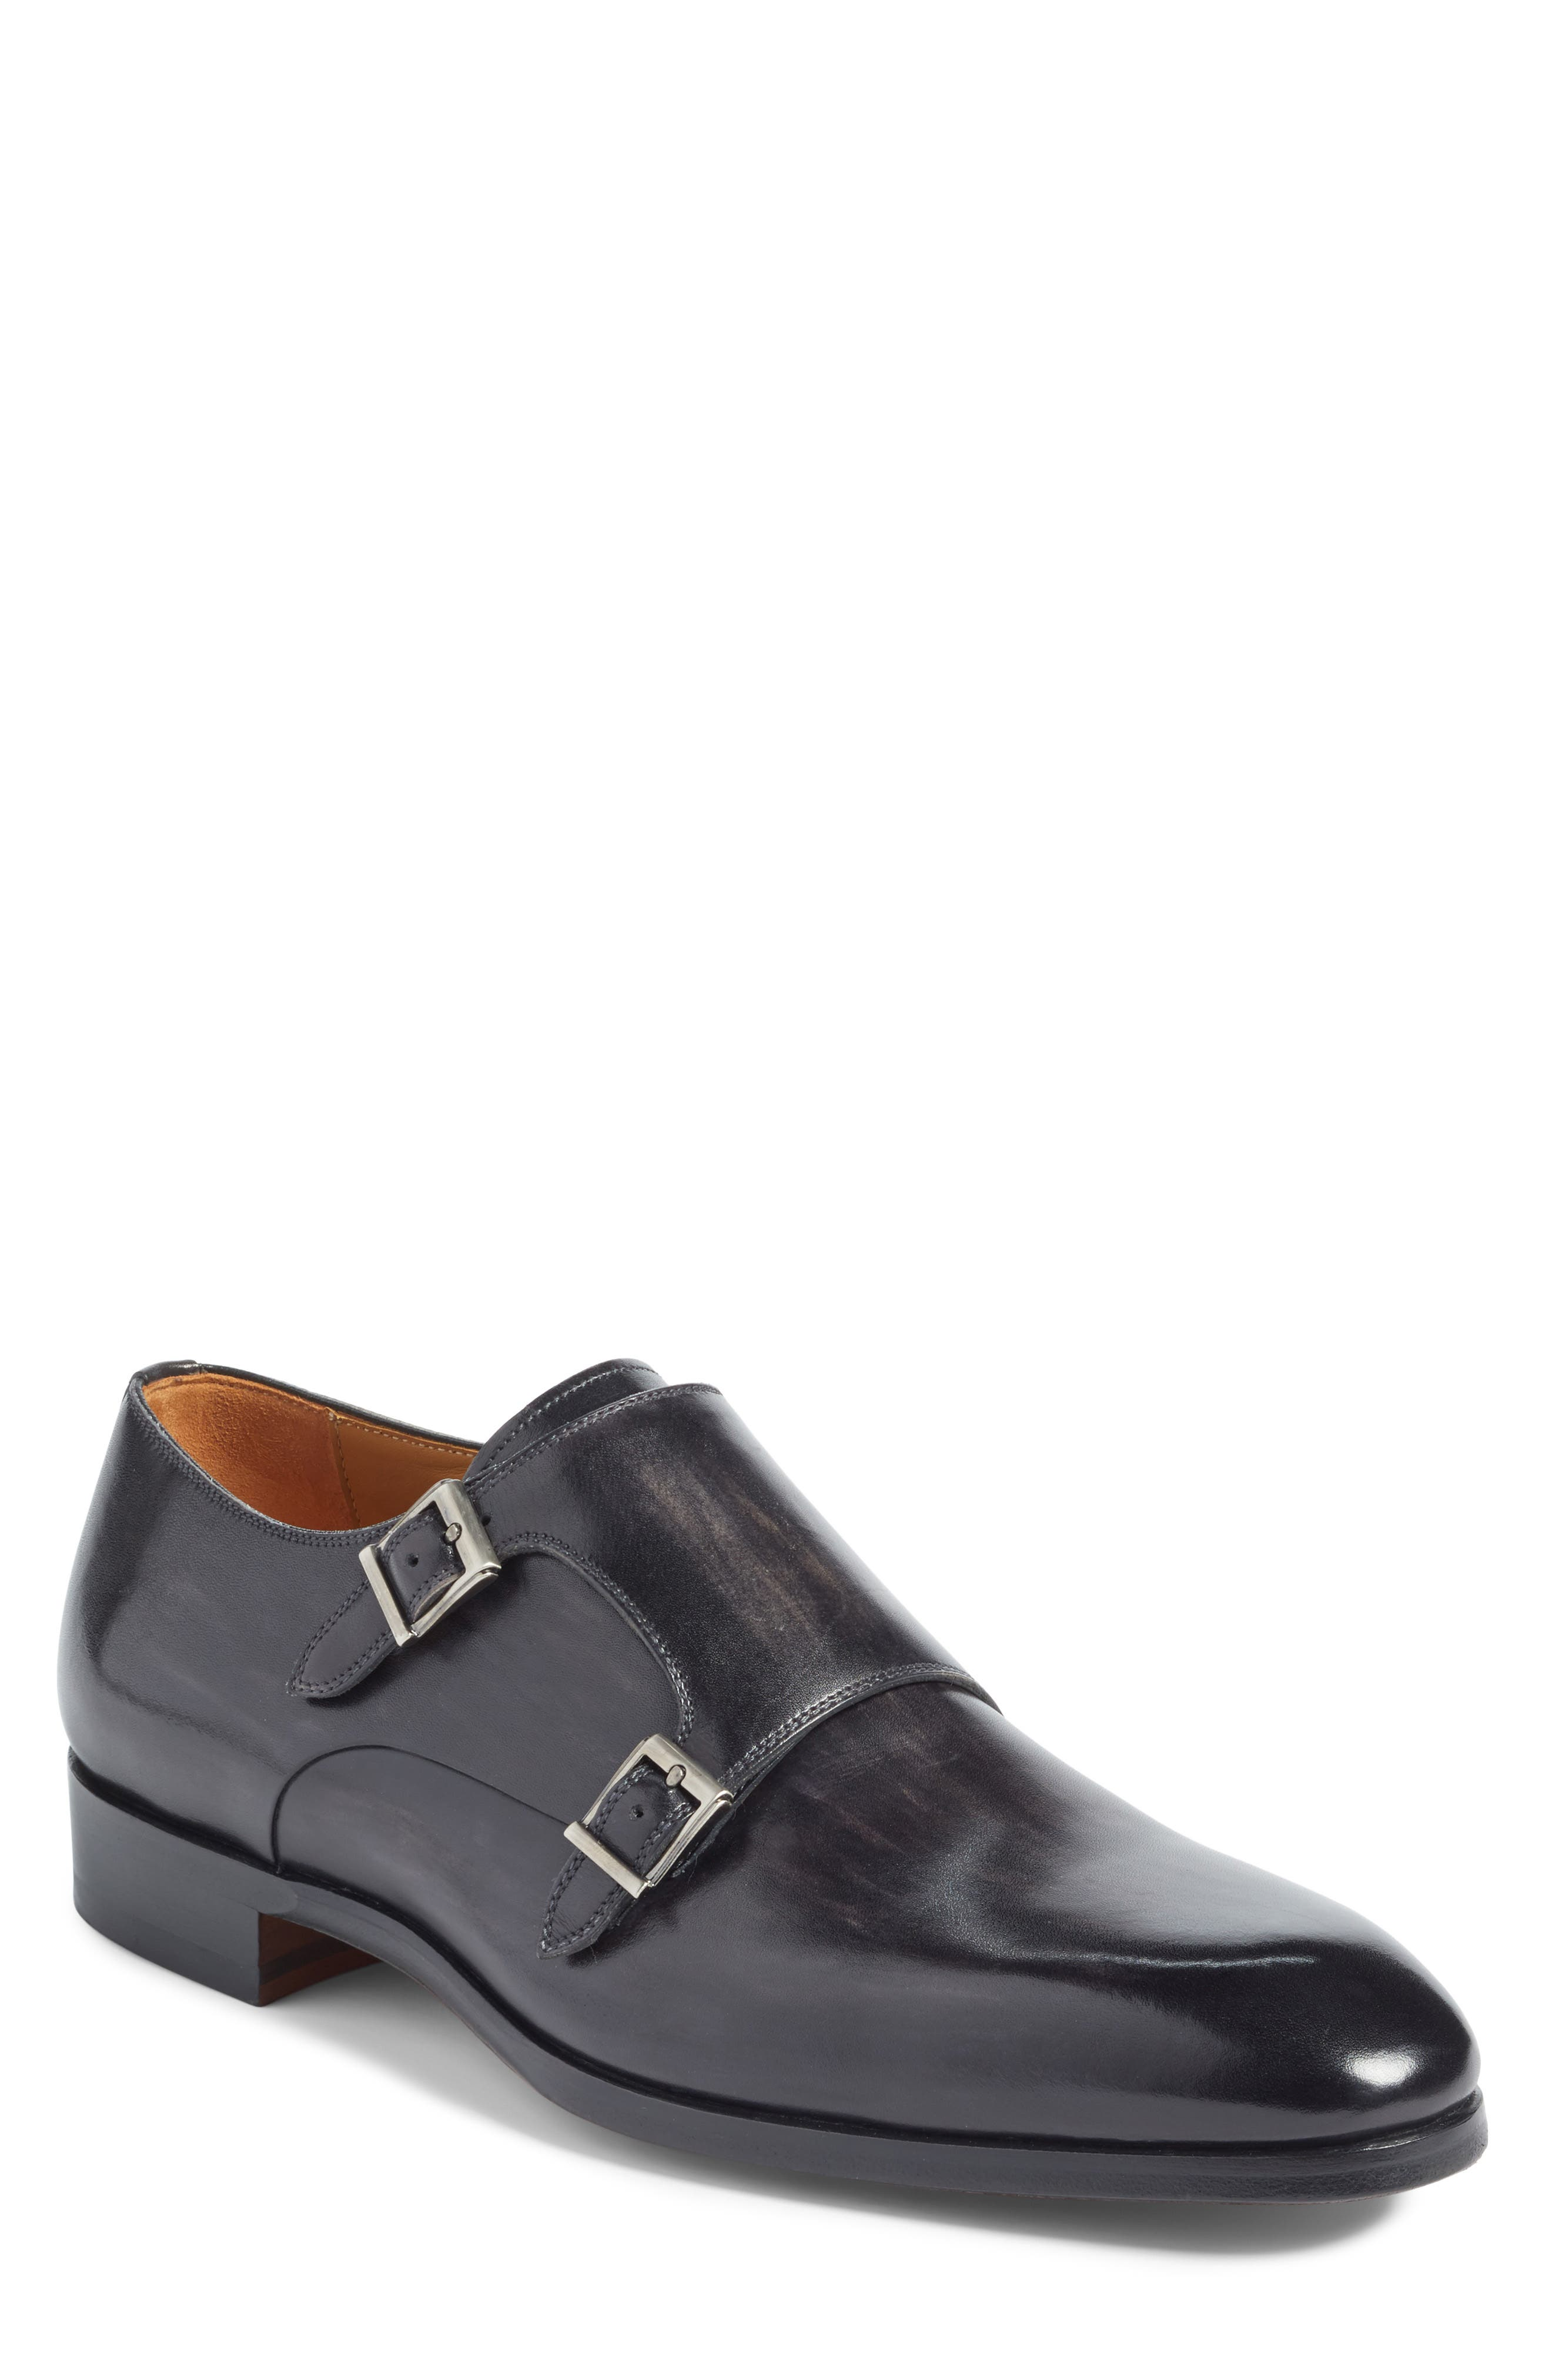 Lucio Double Strap Monk Shoe,                         Main,                         color, LIGHT GREY LEATHER